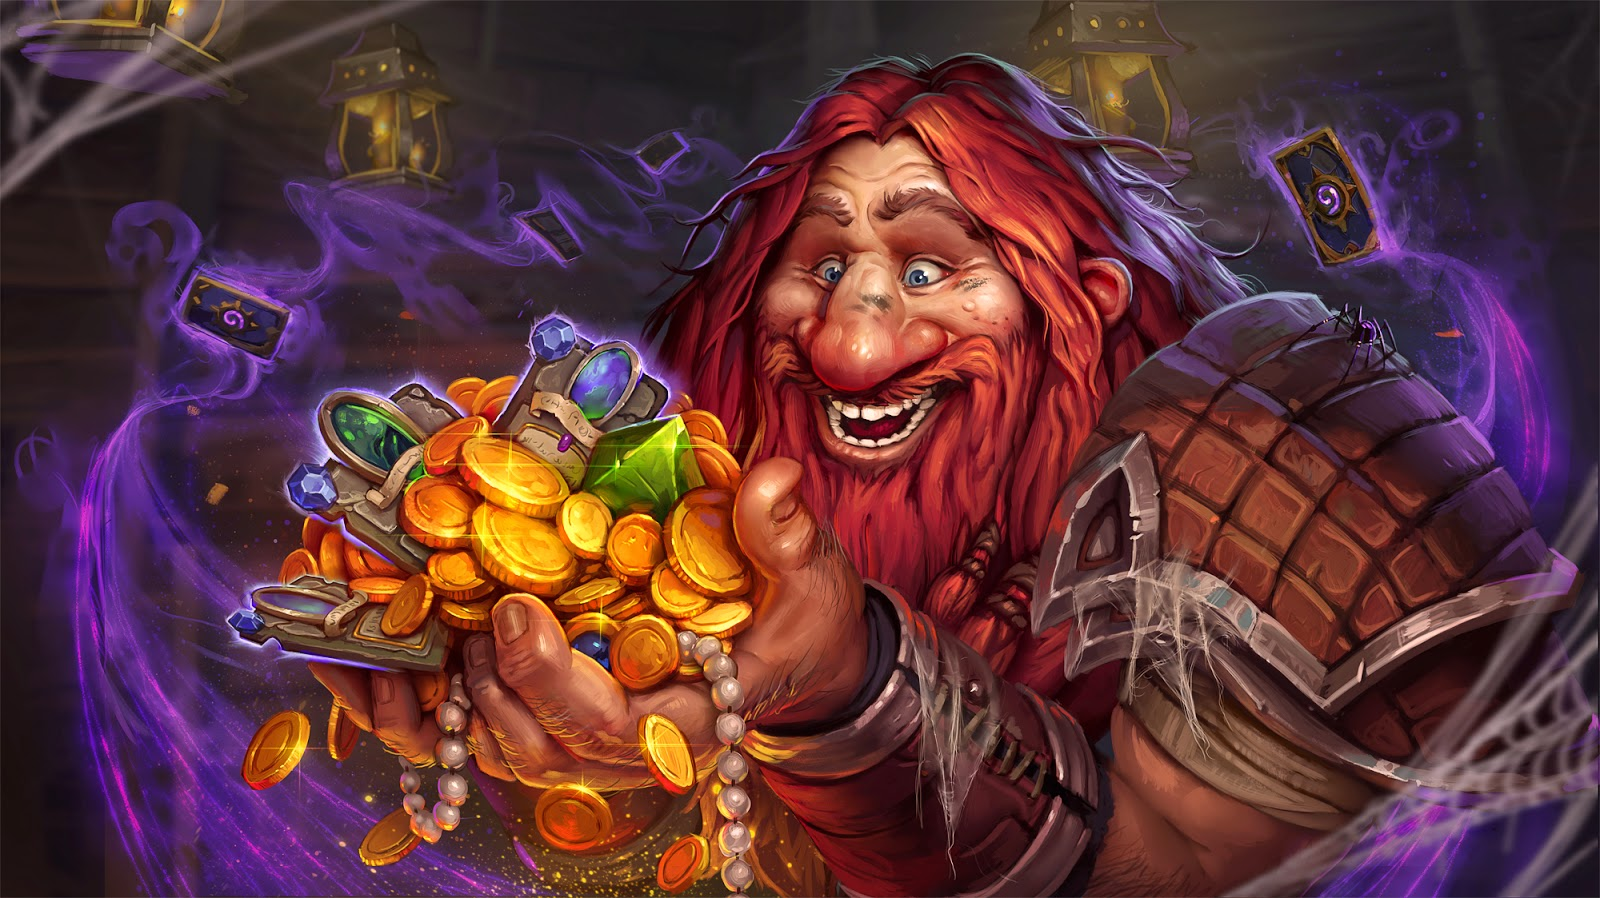 Patch-19632-Deck-Imports-Prince-Malchezaar-and-Maiev-bugs-fixed-Hearthstone